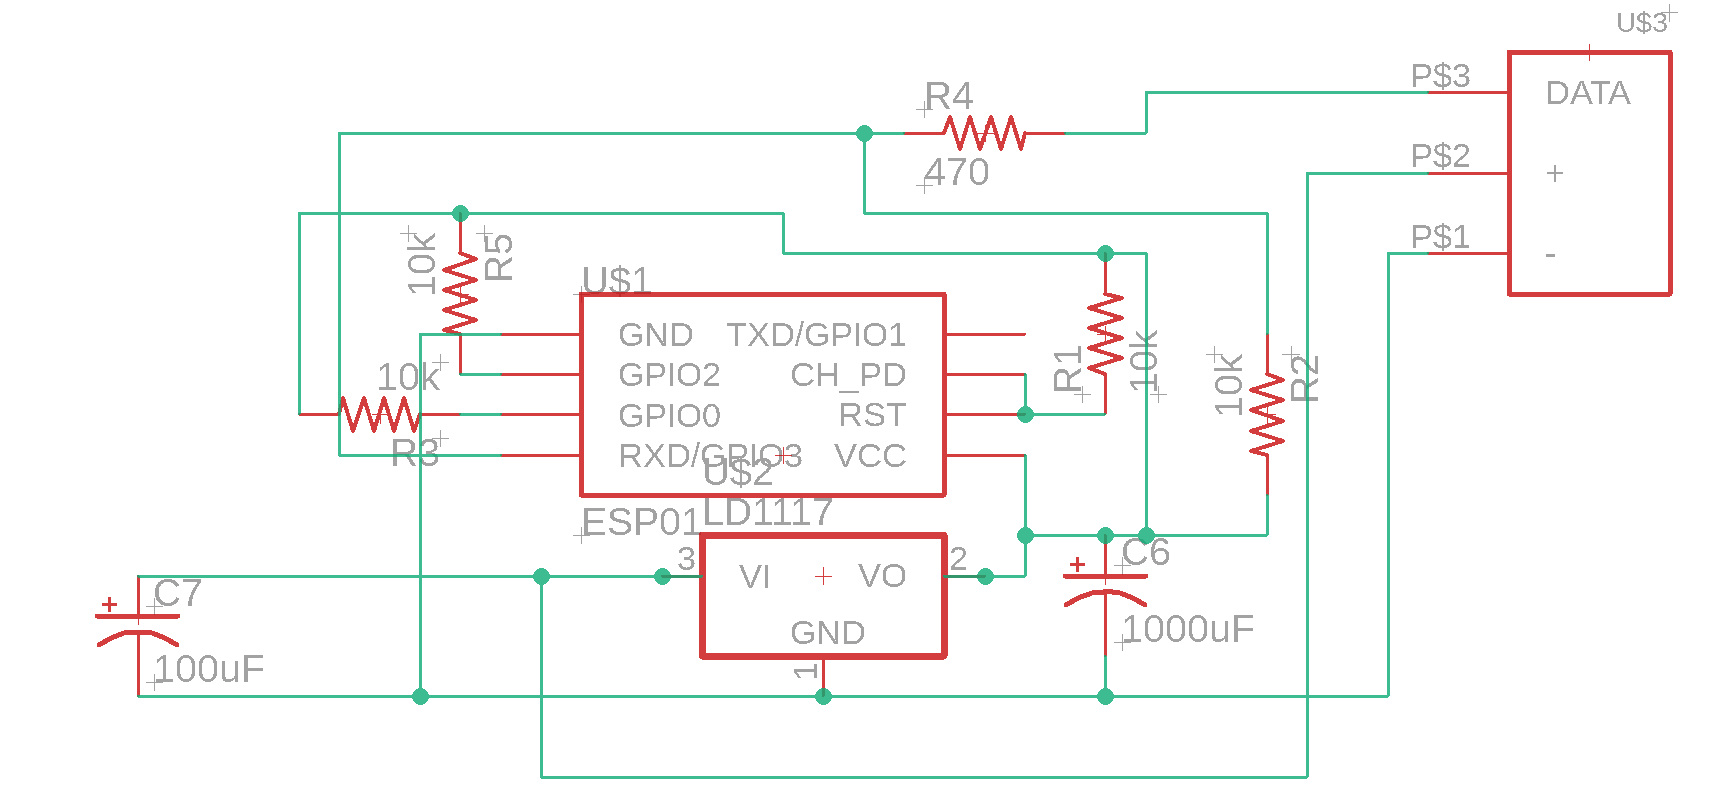 fence esp board schematic.PNG